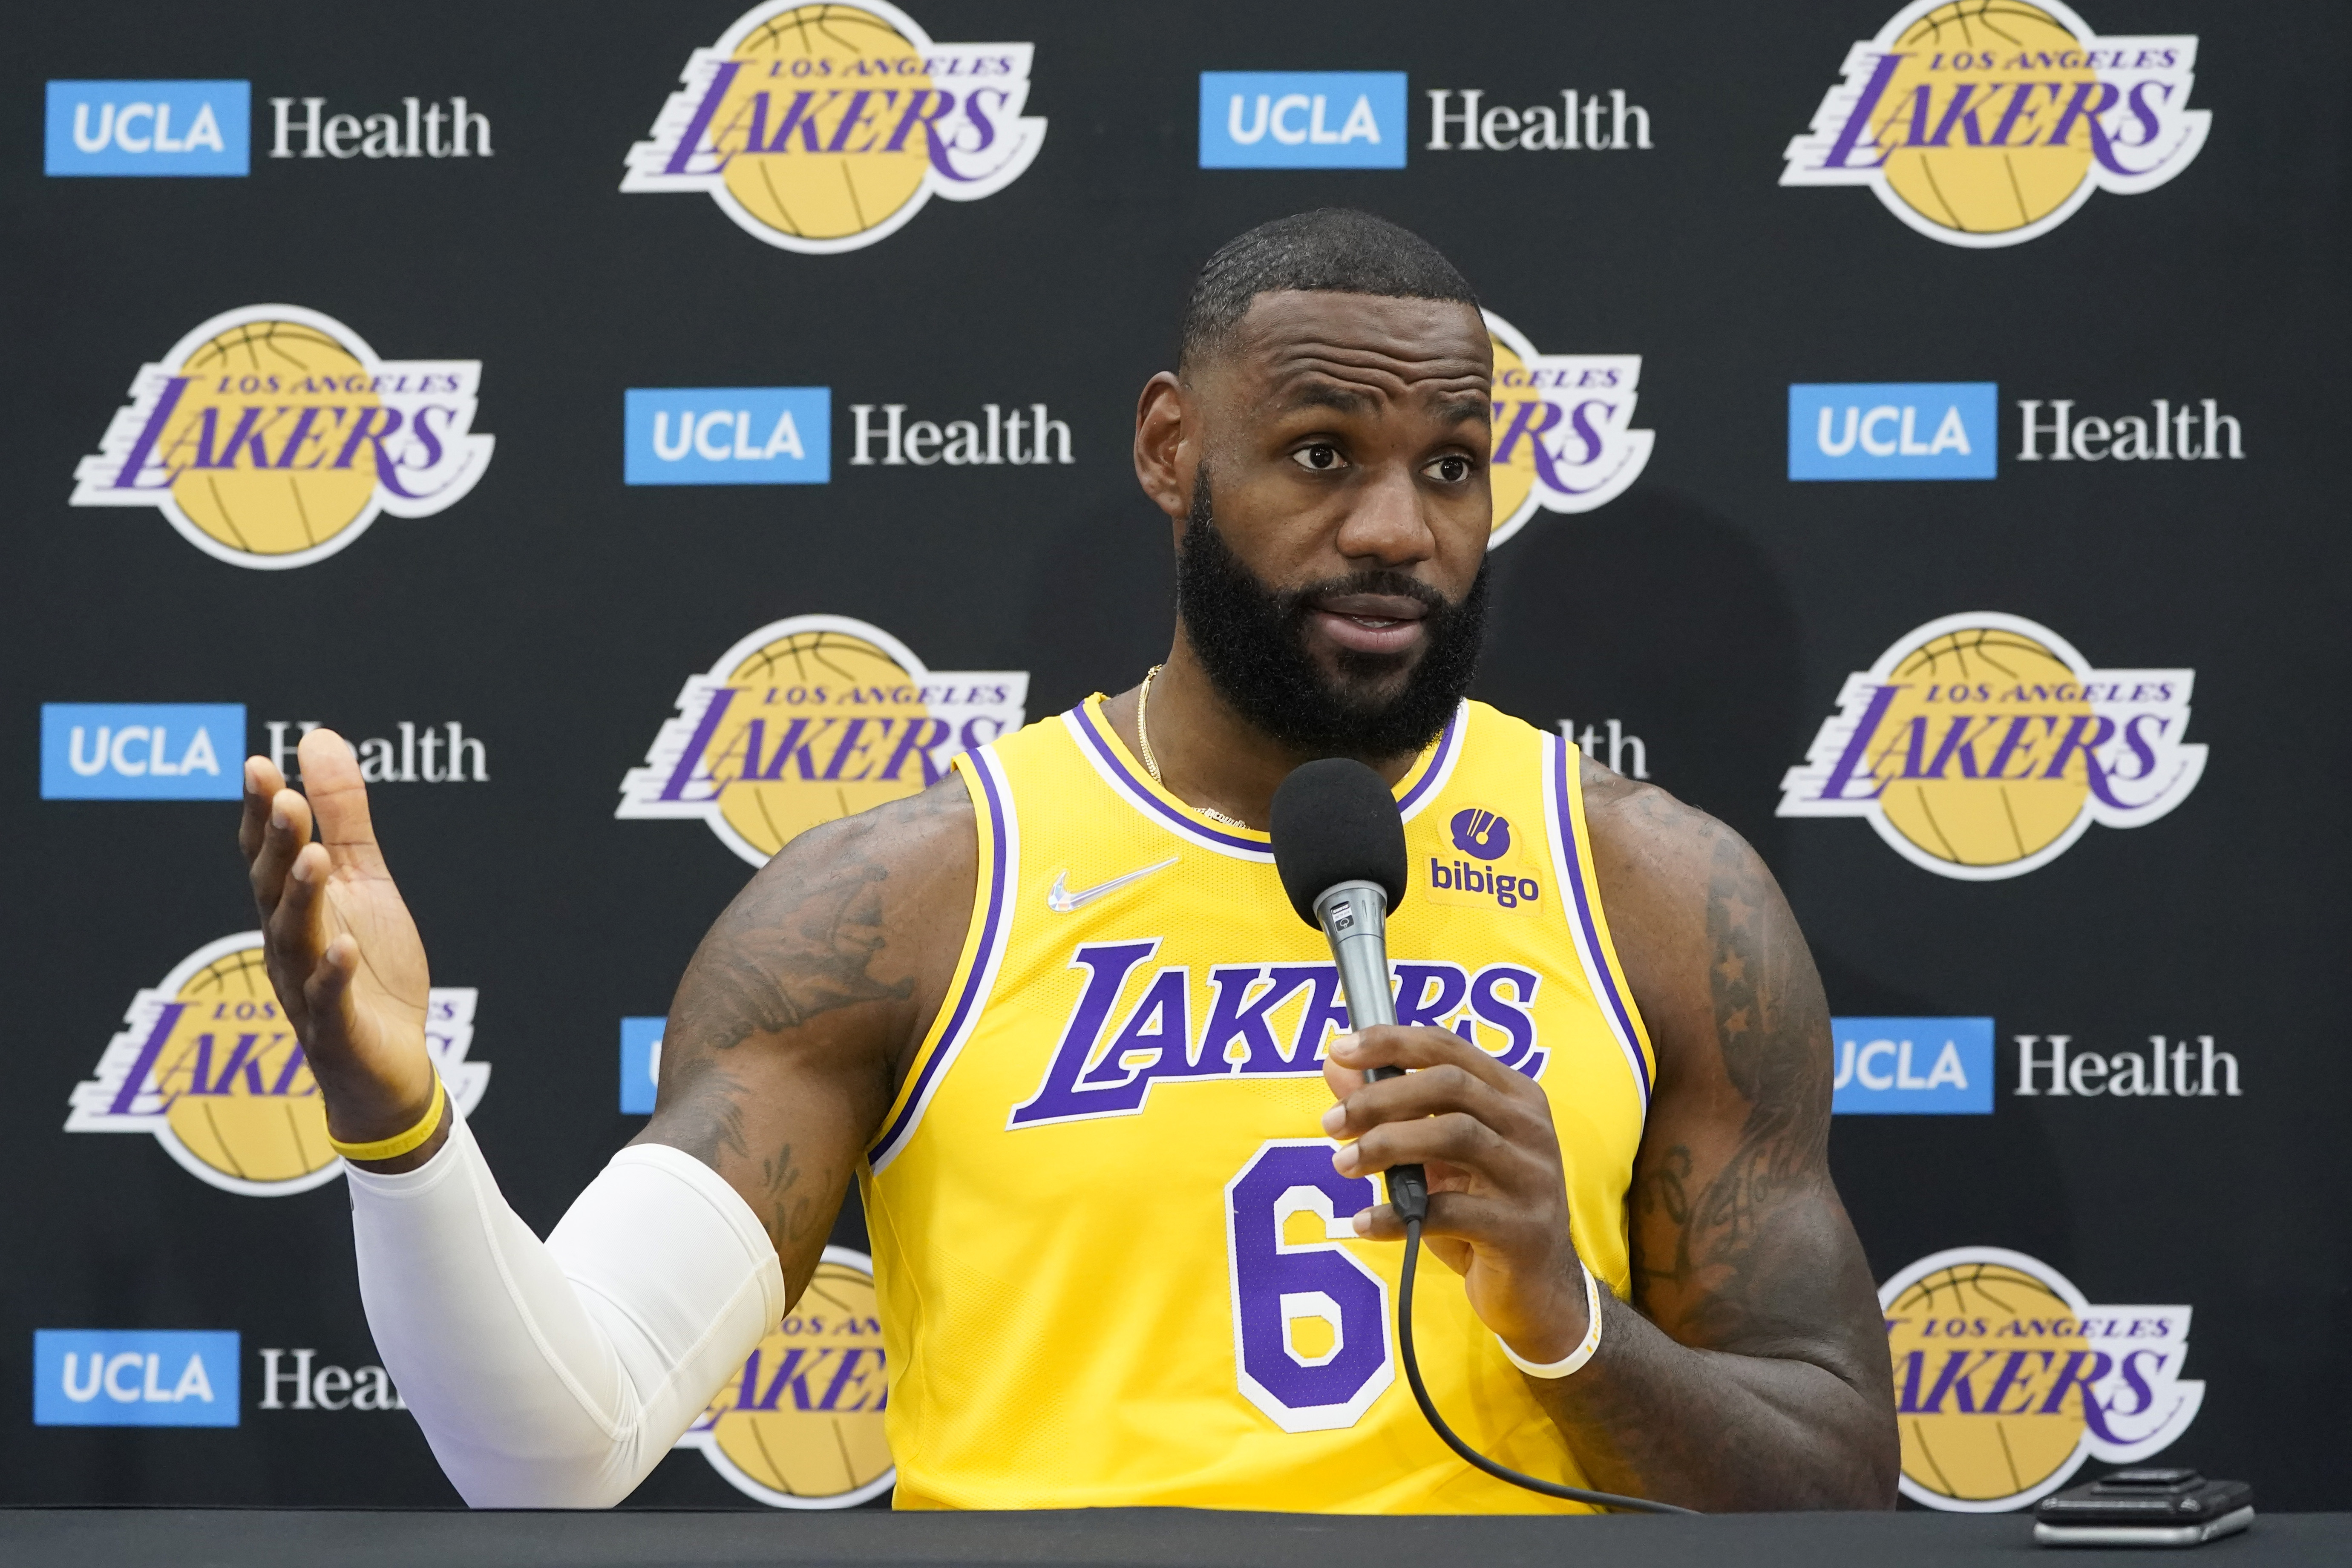 Lakers' LeBron James says he received COVID-19 vaccine: 'I think everyone has their own choice'